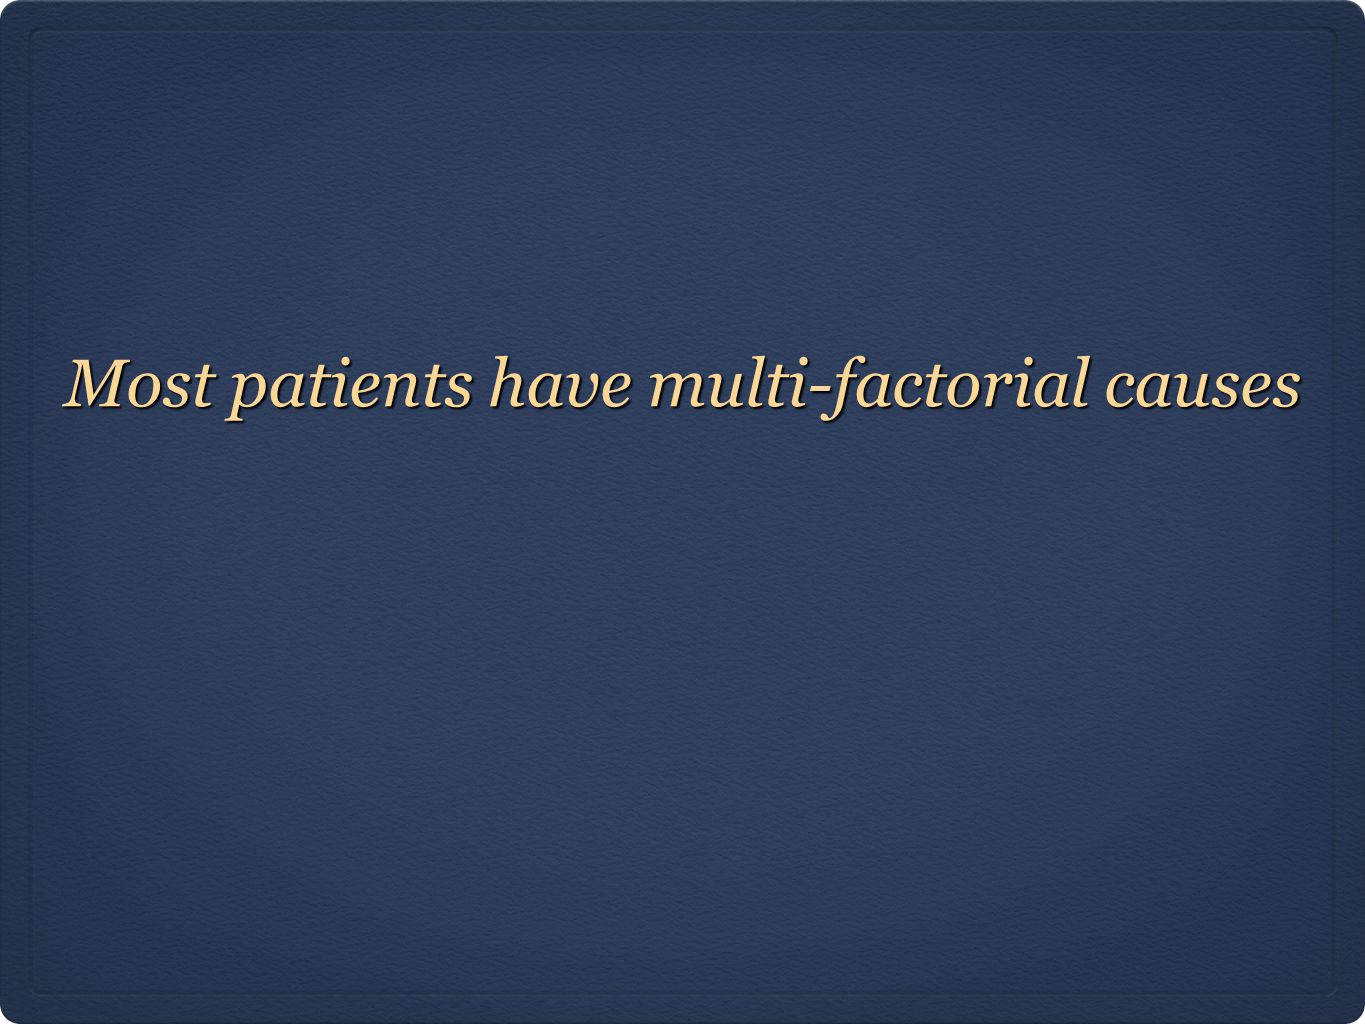 Most patients have multi-factorial causes